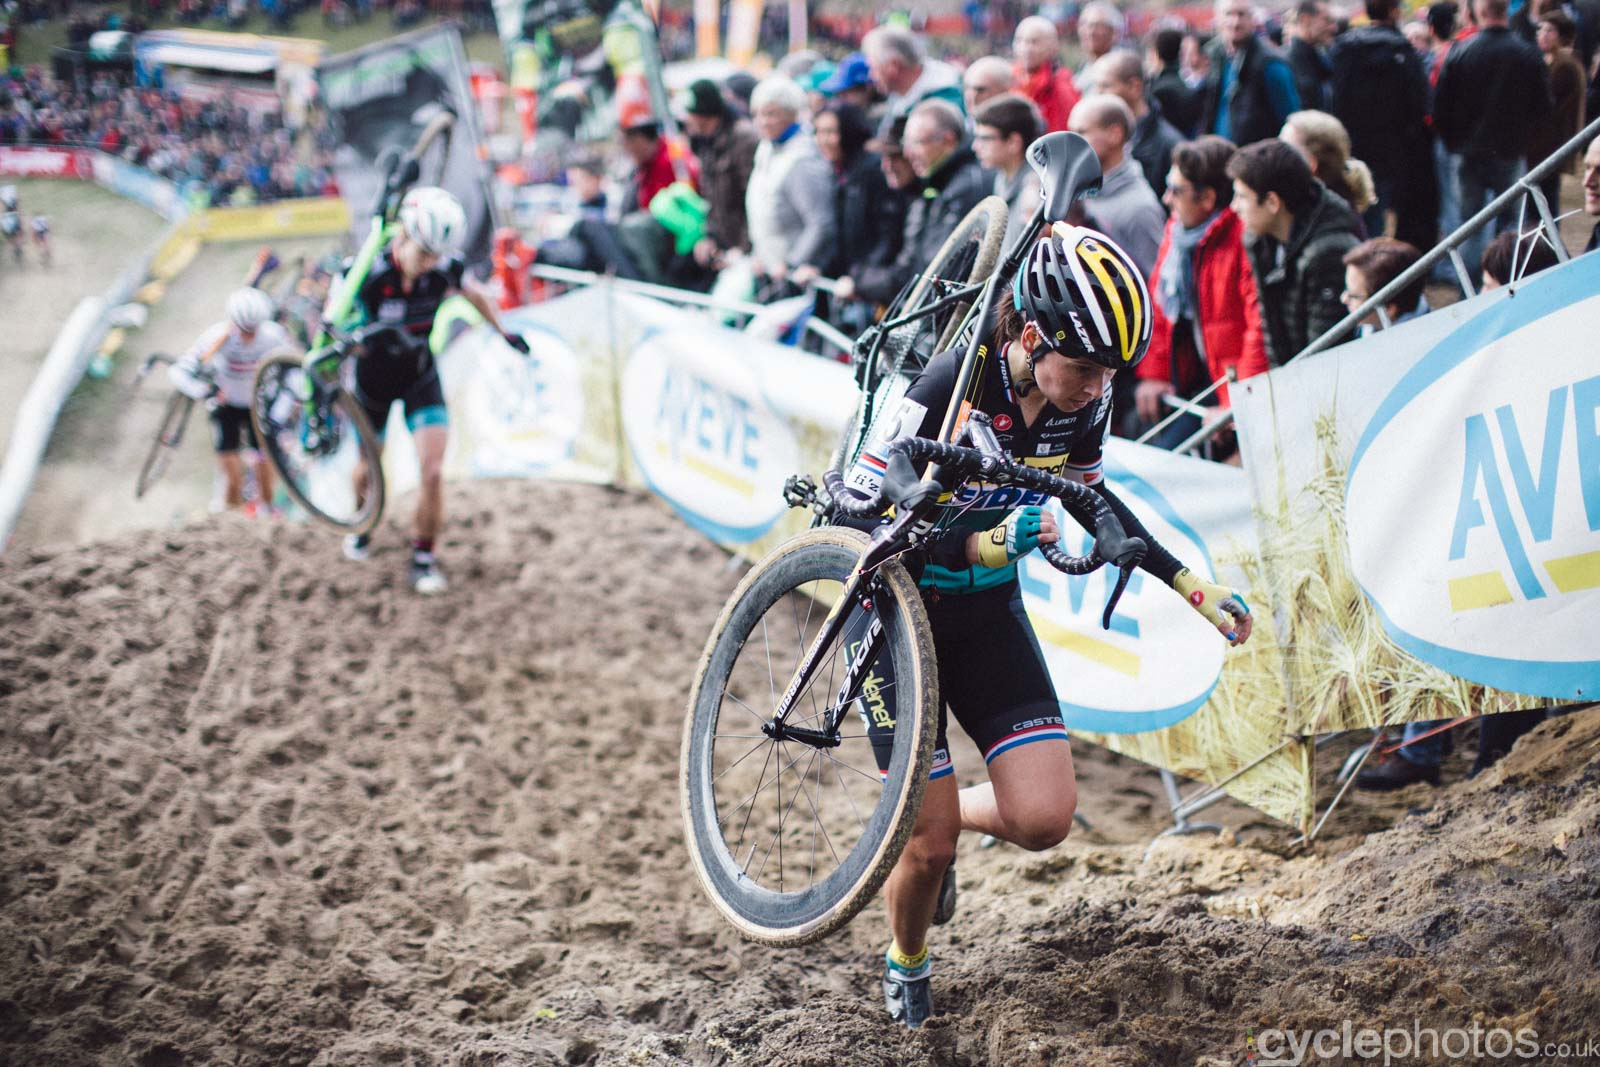 2015-cyclephotos-cyclocross-zonhoven-145604-nikki-harris